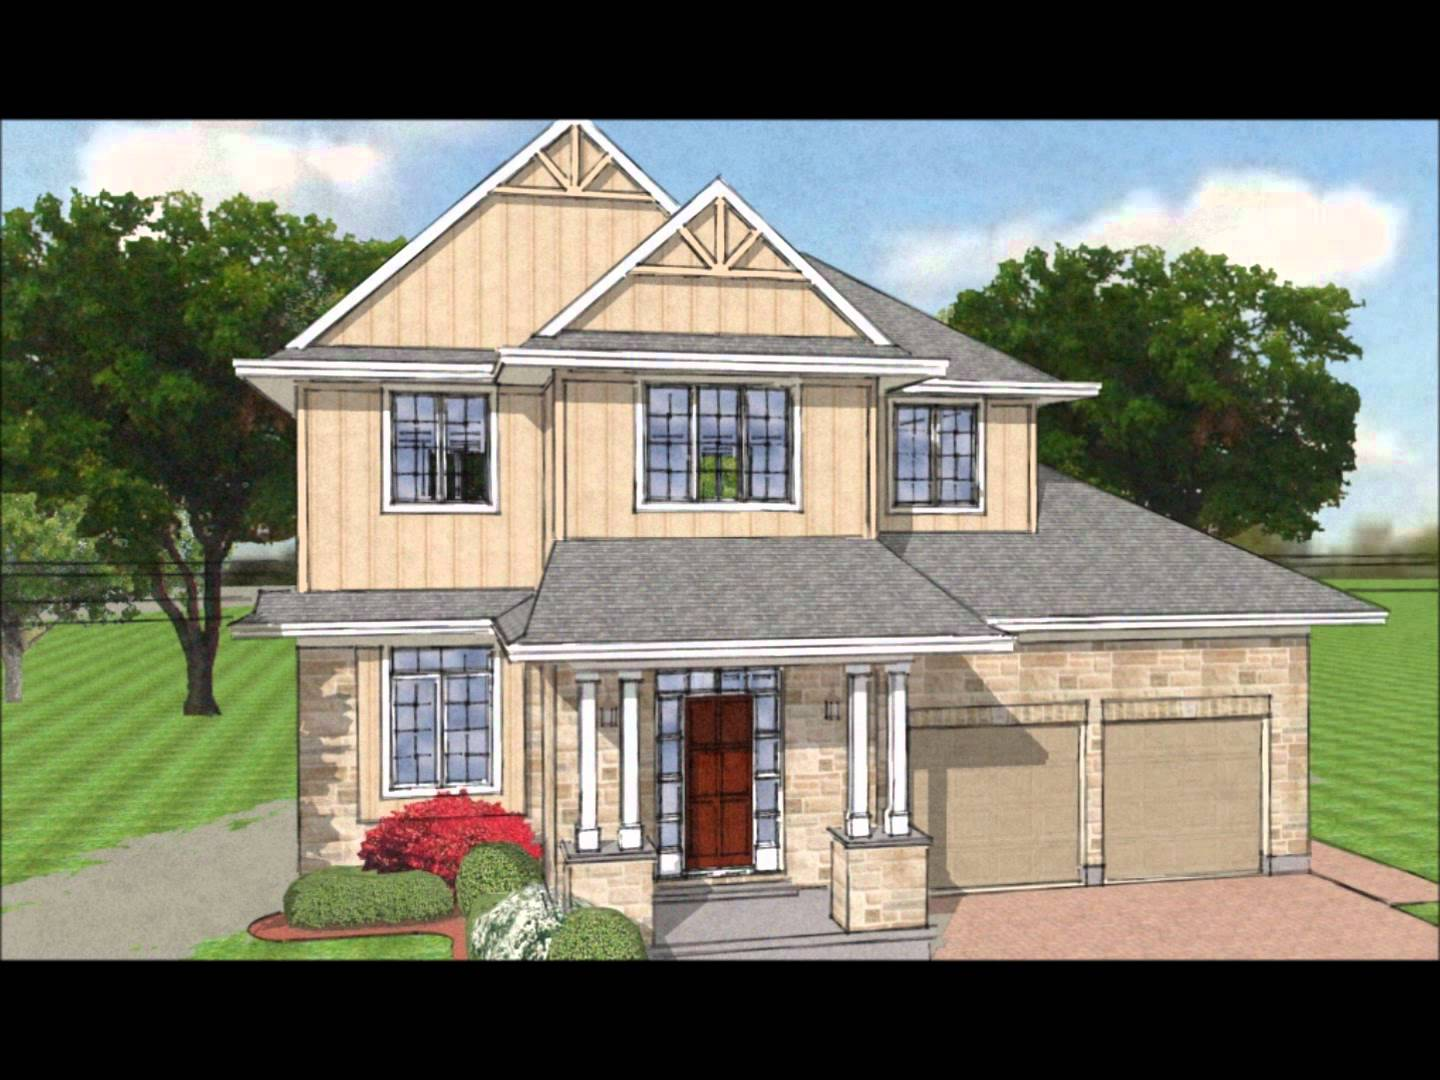 1440x1080 2d And 3d Elevation Drawings And Renderings